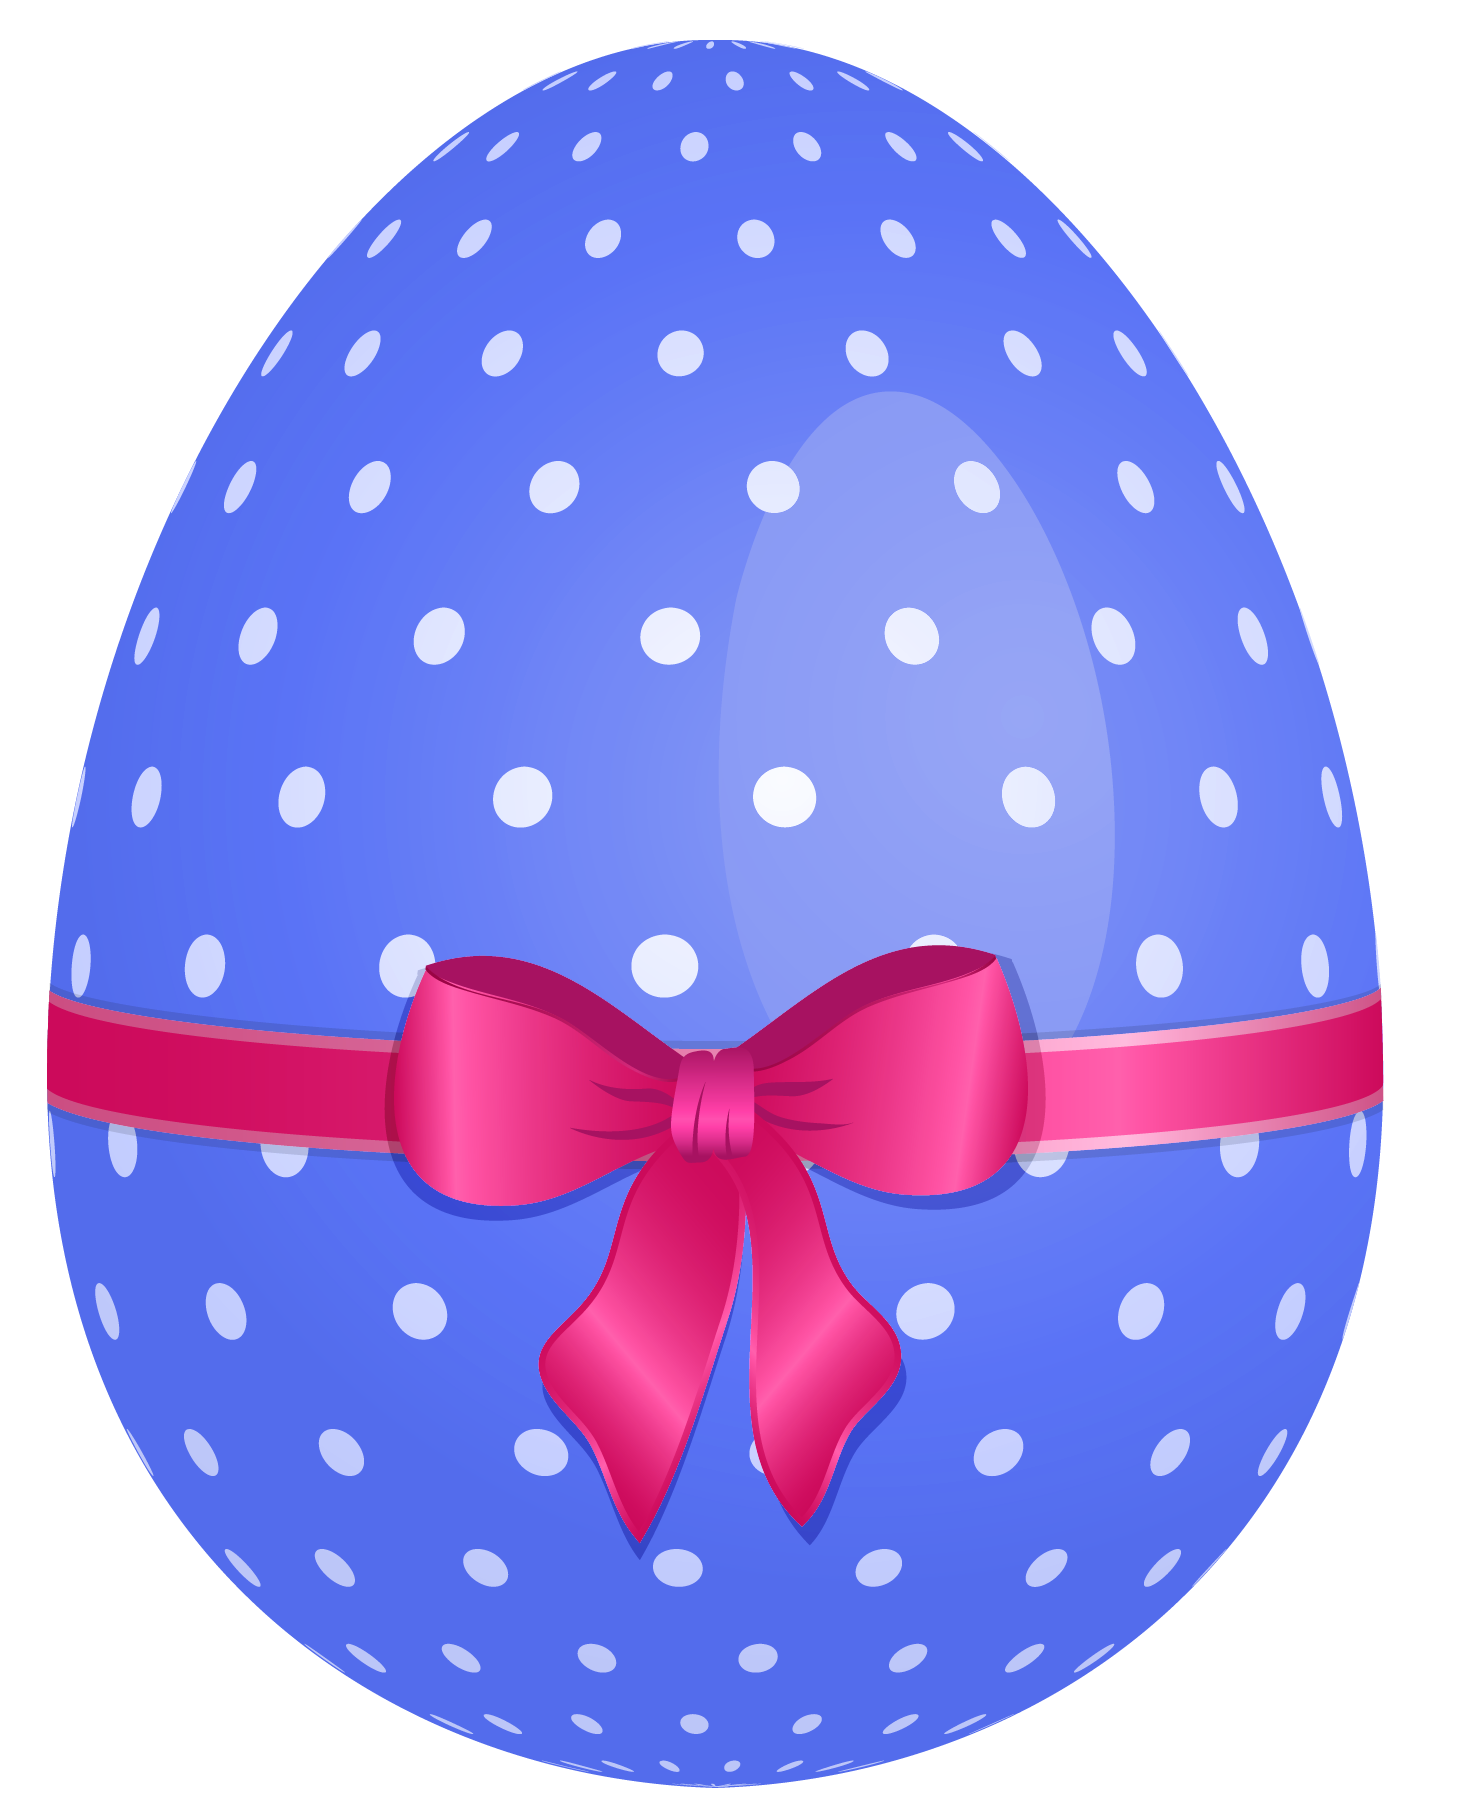 Pin By Melody Bray On C Blue Pink Easter Graphics Easter Clipart Easter Images